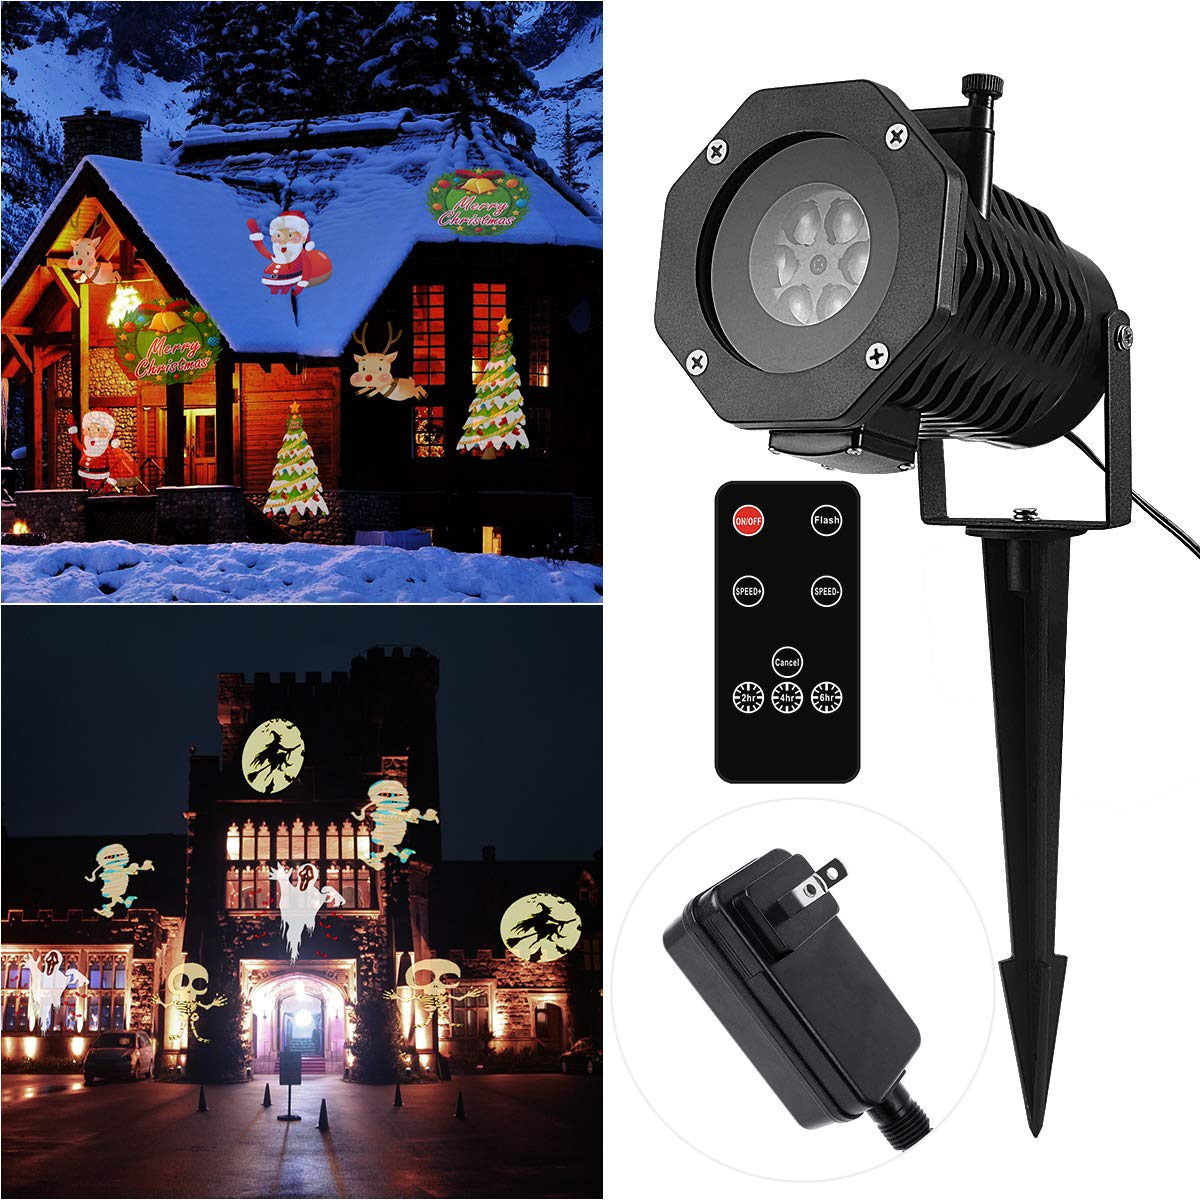 YUNLIGHTS Halloween Projector Lights 15 Pattern LED Projector Light Halloween Decorations with Wireless Remote, Timer, Waterproof Holiday Projector for Outdoor Garden Decoration by YUNLIGHTS